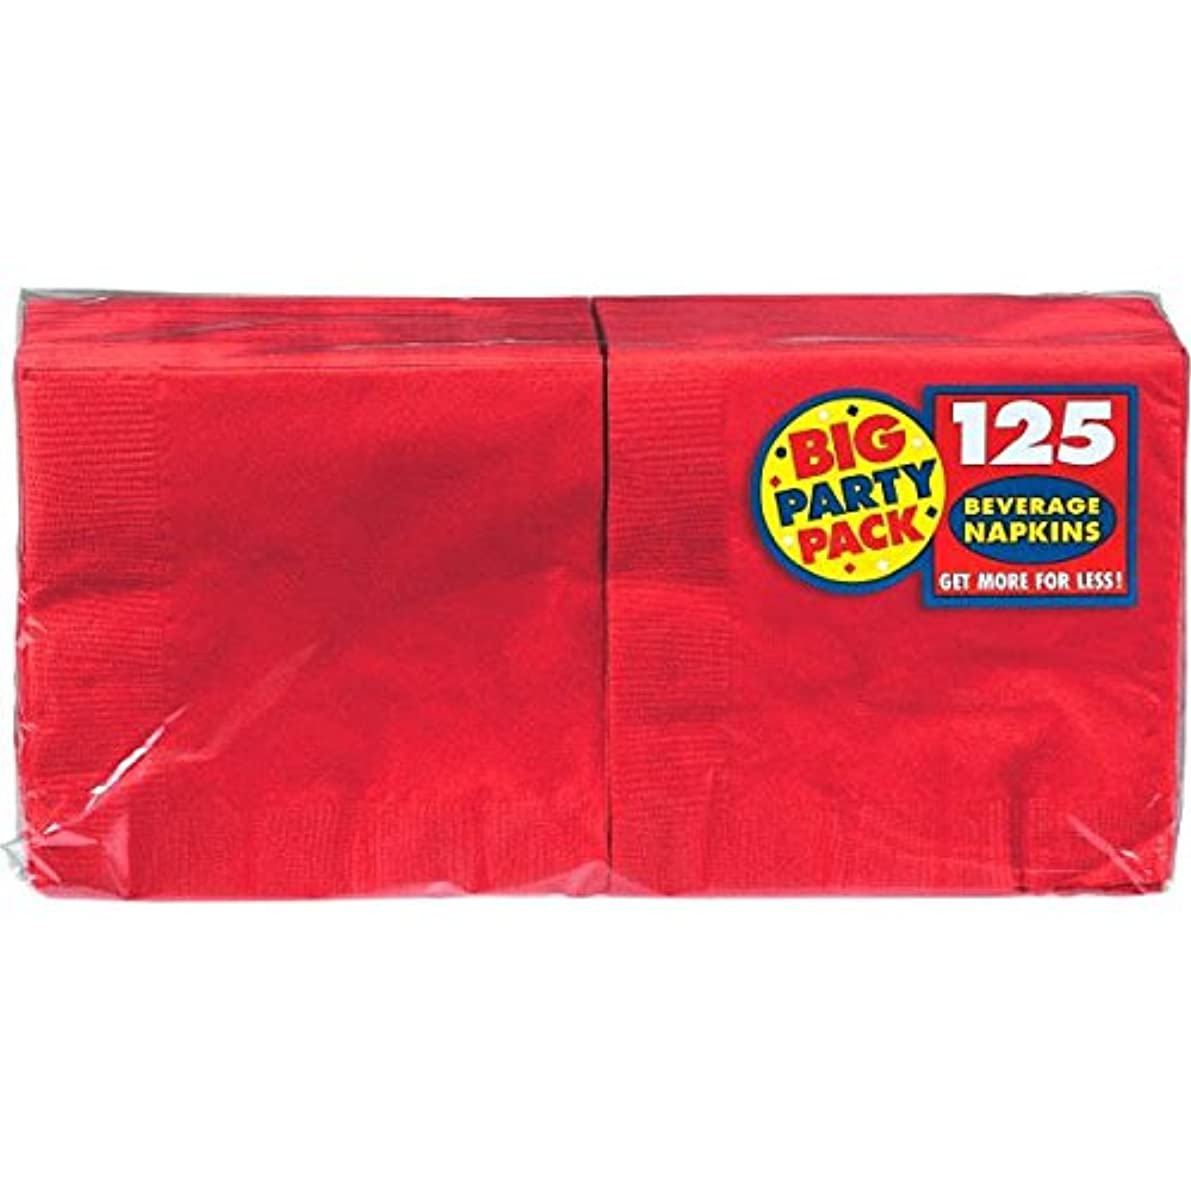 Apple Red Beverage Napkins Big Party Pack, 125 Ct.